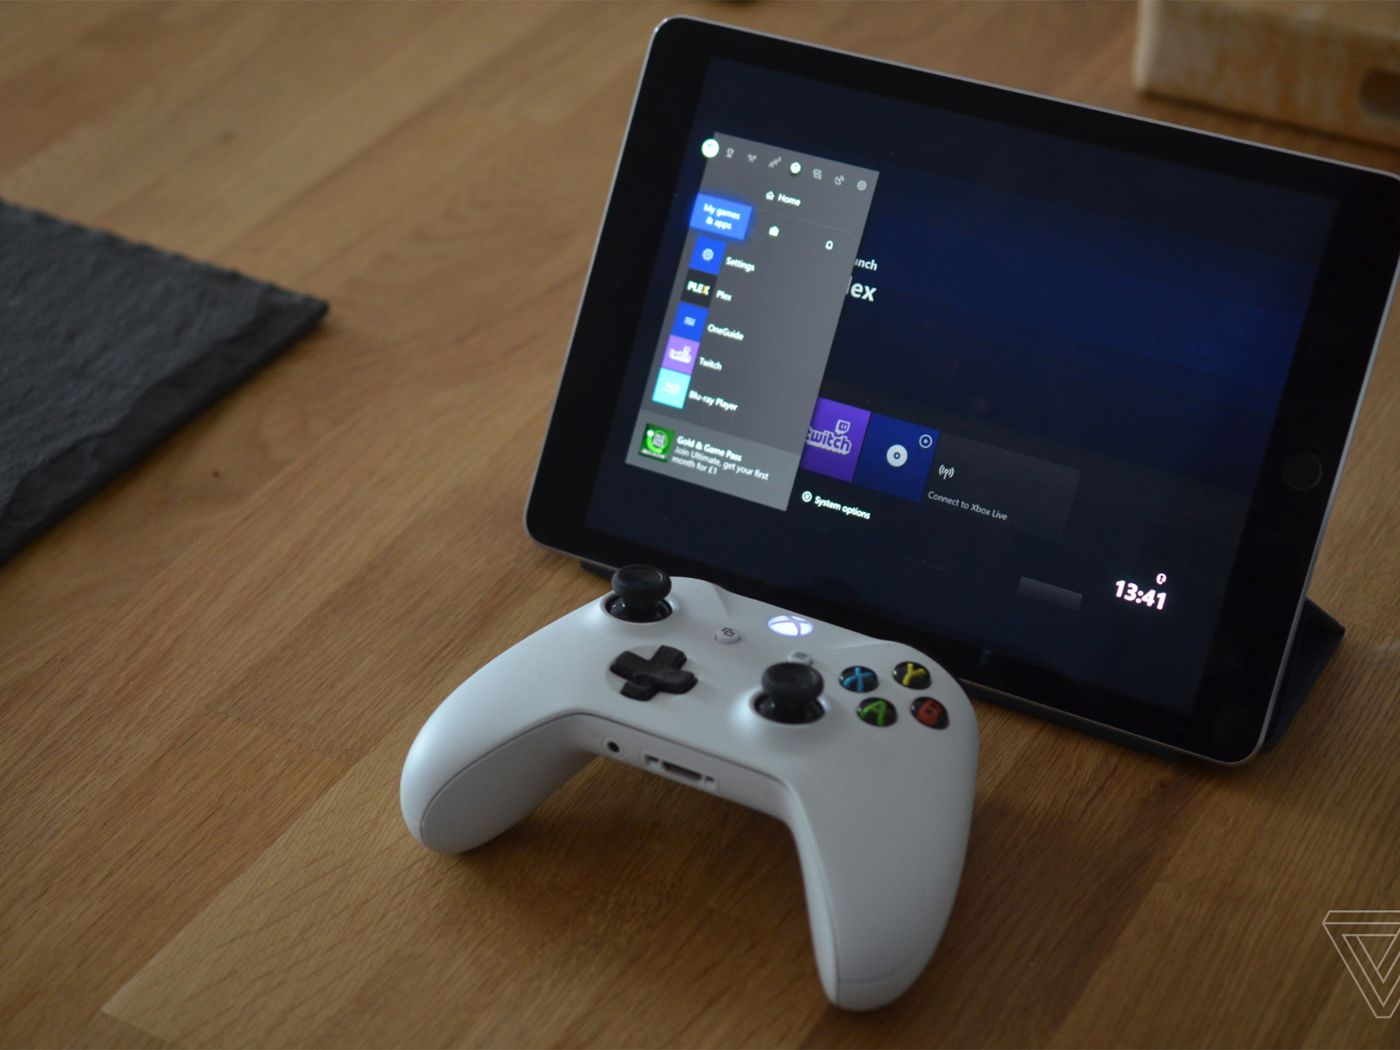 Apple S Xbox And Ps4 Controller Support Turns An Ipad Into A Portable Game Console The Verge